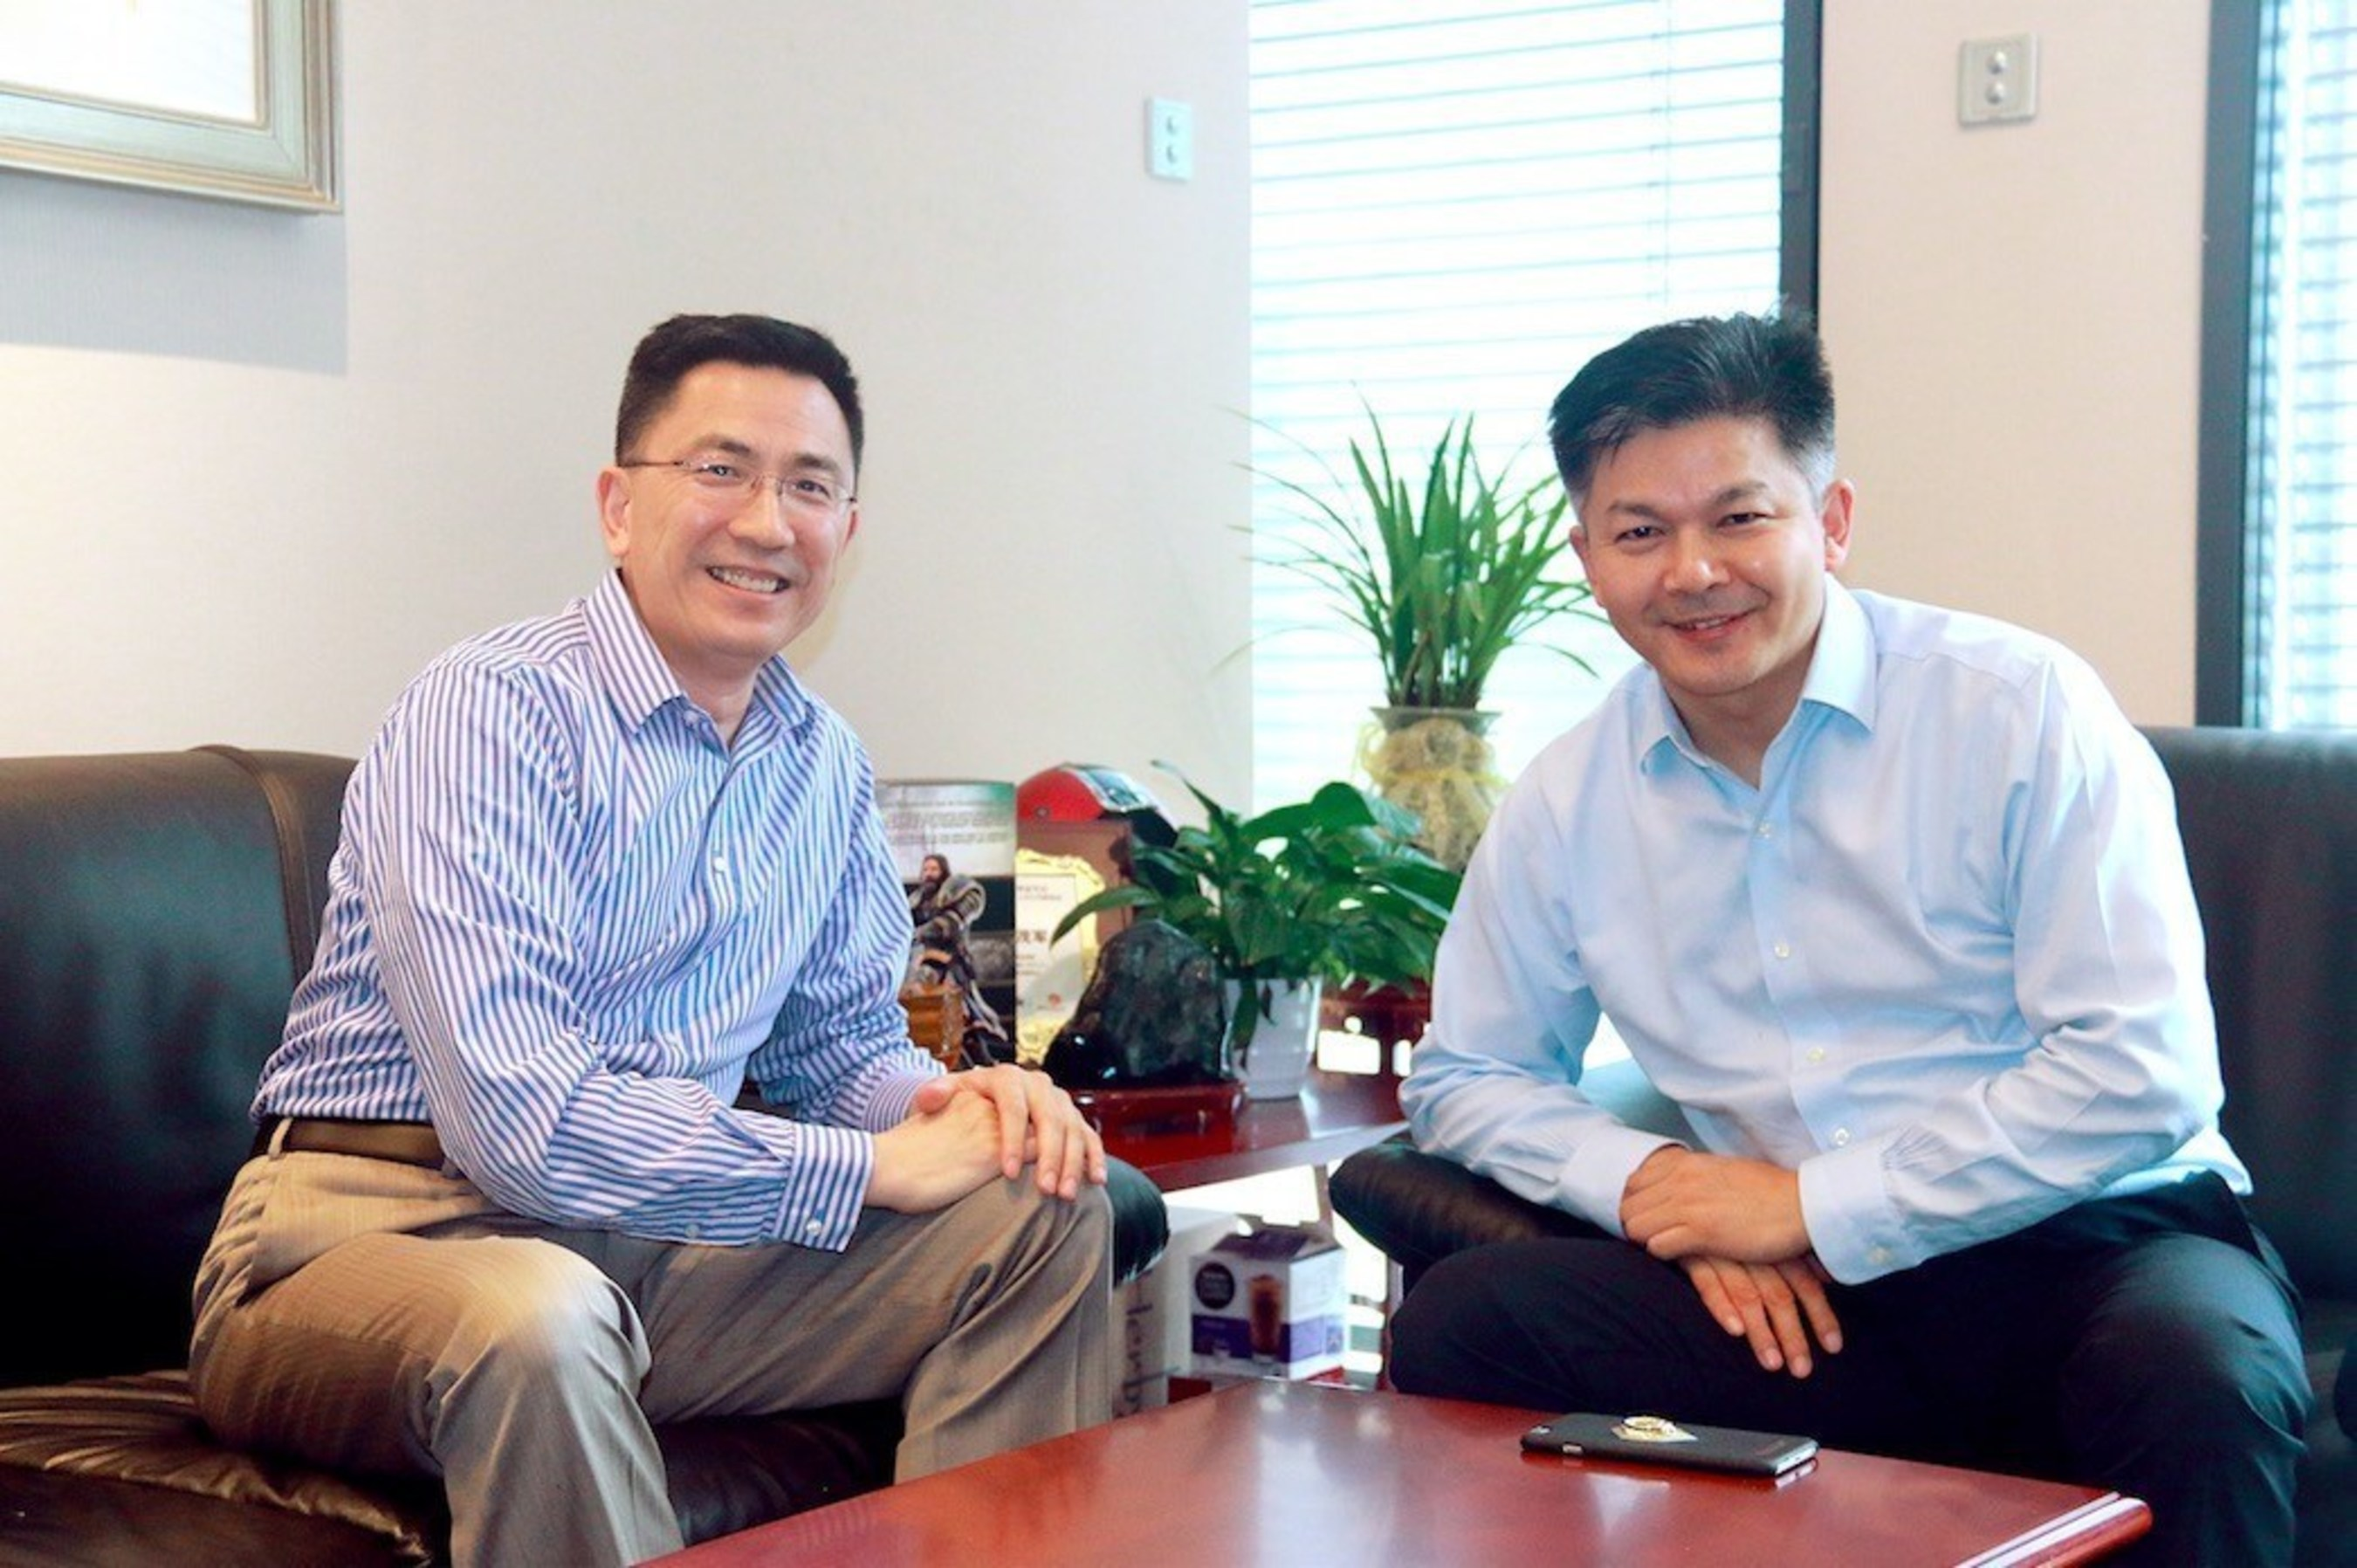 Board director & president of Wanda Cinema Line, Zeng Maojun, Left: CEO of Mtime.com, Hou Kaiwen